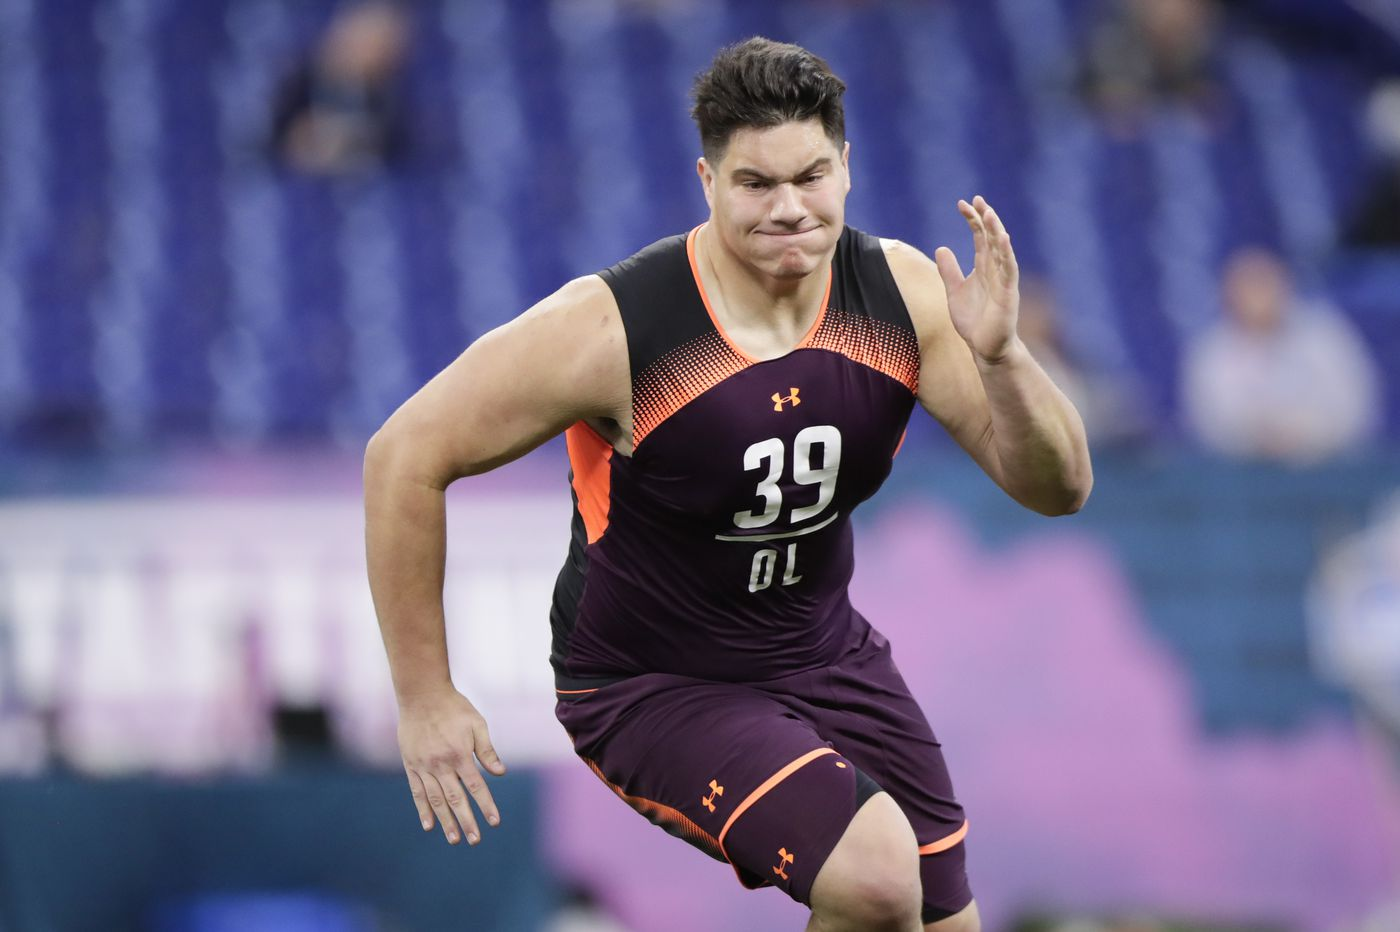 Penn State OL Connor McGovern's versatility could appeal to Eagles